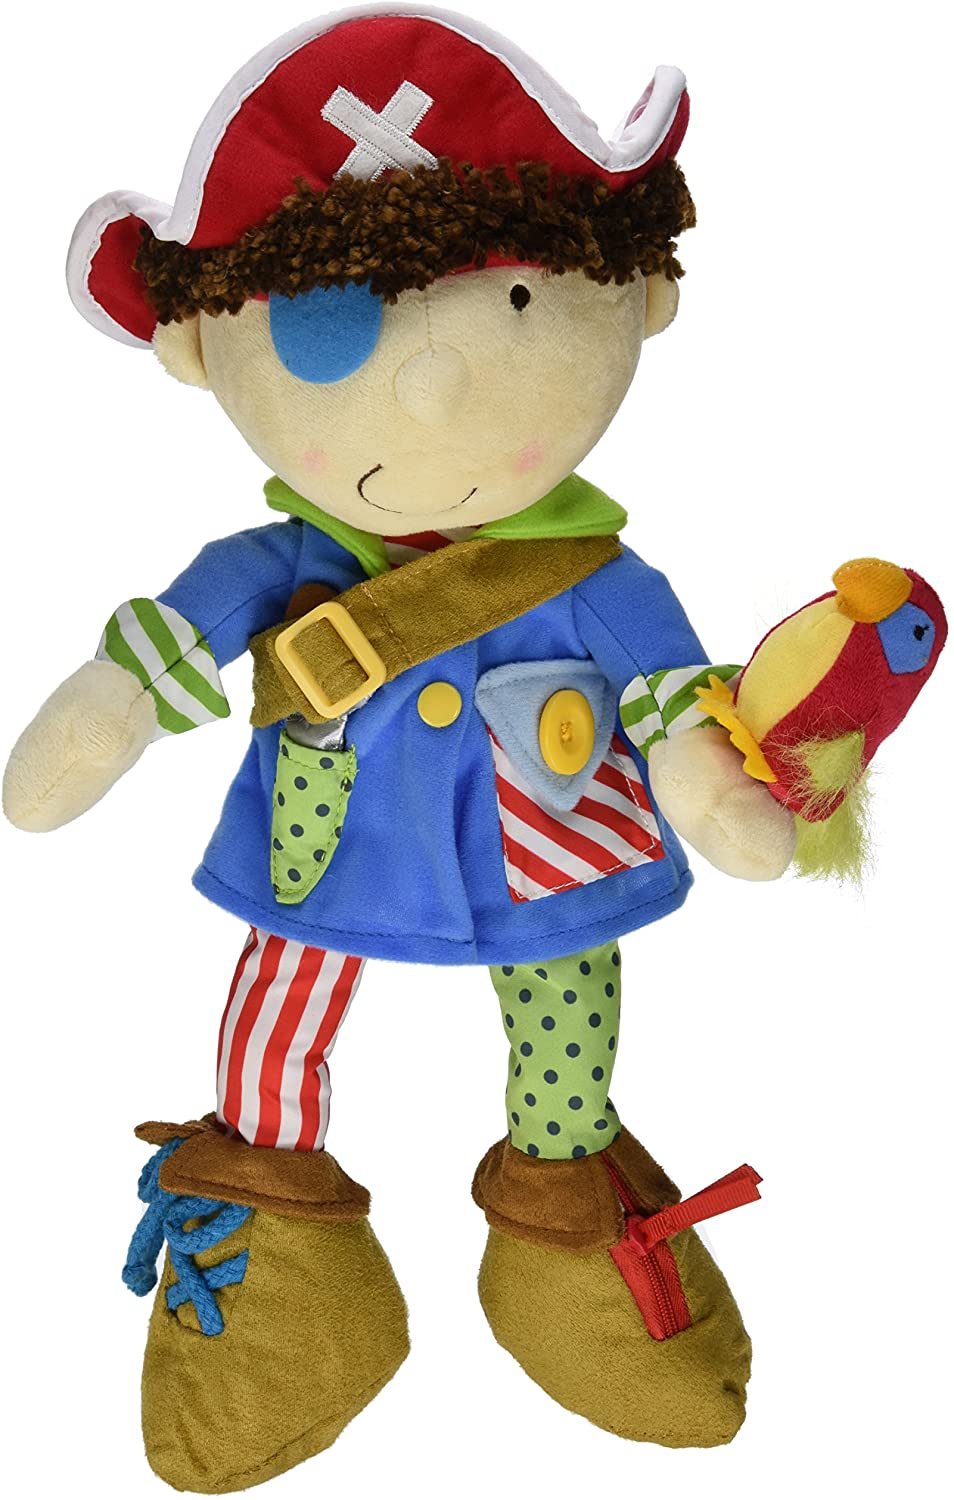 Dress Up Pirate Activity Toy